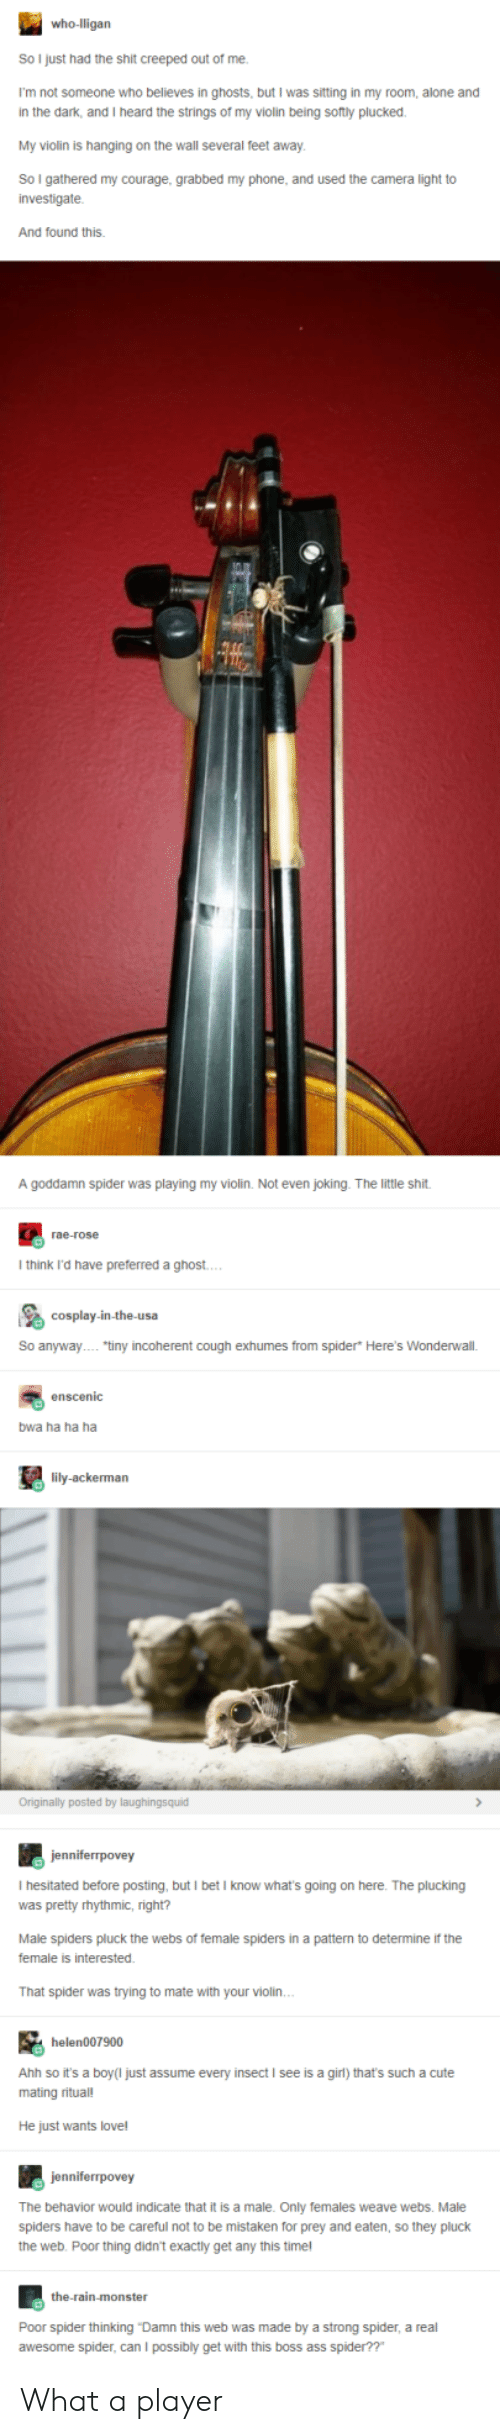 """incoherent: So I just had the shit creeped out of me.  I'm not someone who believes in ghosts, but I was sitting in my room, alone and  in the dark, and I heard the strings of my violin being sotly plucked  My violin is hanging on the wall several feet away  So I gathered my courage, grabbed my phone, and used the camera light to  investigate.  And found this.  A goddamn spider was playing my violin. Not even joking. The little shit  rae-rose  I think i'd have preferred a ghost  So anyway""""tiny incoherent cough exhumes from spider* Here's Wonderwall.  enscenic  bwa ha ha ha  lily-ackerman  Originally posted by laughingsquid  I hesitated before posting, but I betI know what's going on here. The plucking  was pretty rhythmic, right?  Male spiders pluck the webs of temale spiders in a pattern to determine if the  female is interested  That spider was trying to mate with your violin  helen007900  Ahh so it's a boy(I just assume every insect I see is a girl) that's such a cute  mating ritual!  He just wants love!  The behavior would indicate that it is a male. Only females weave webs. Male  spiders have to be careful not to be mistaken for prey and eaten, so they pluck  the web. Poor thing didn't exactly get any this timel  the-rain-monster  Poor spider thinking Damn this web was made by a strong spider, a real  awesome spider, can I possibly get with this boss ass spider??"""" What a player"""